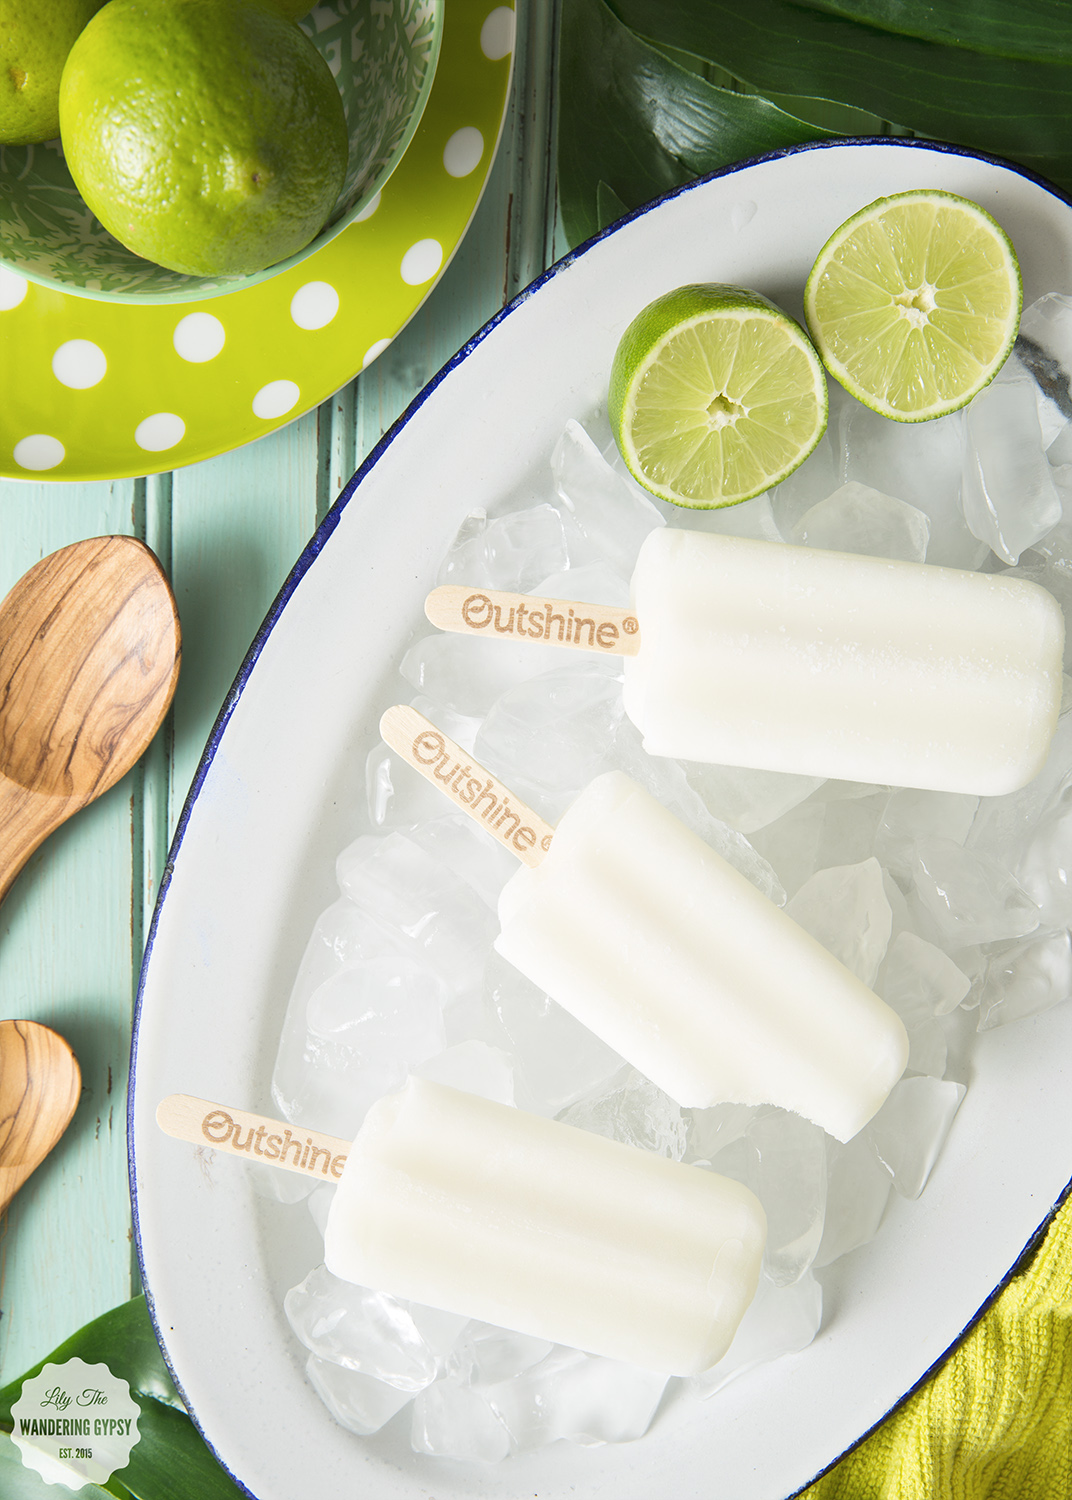 Outshine Fruit Bars in Lime